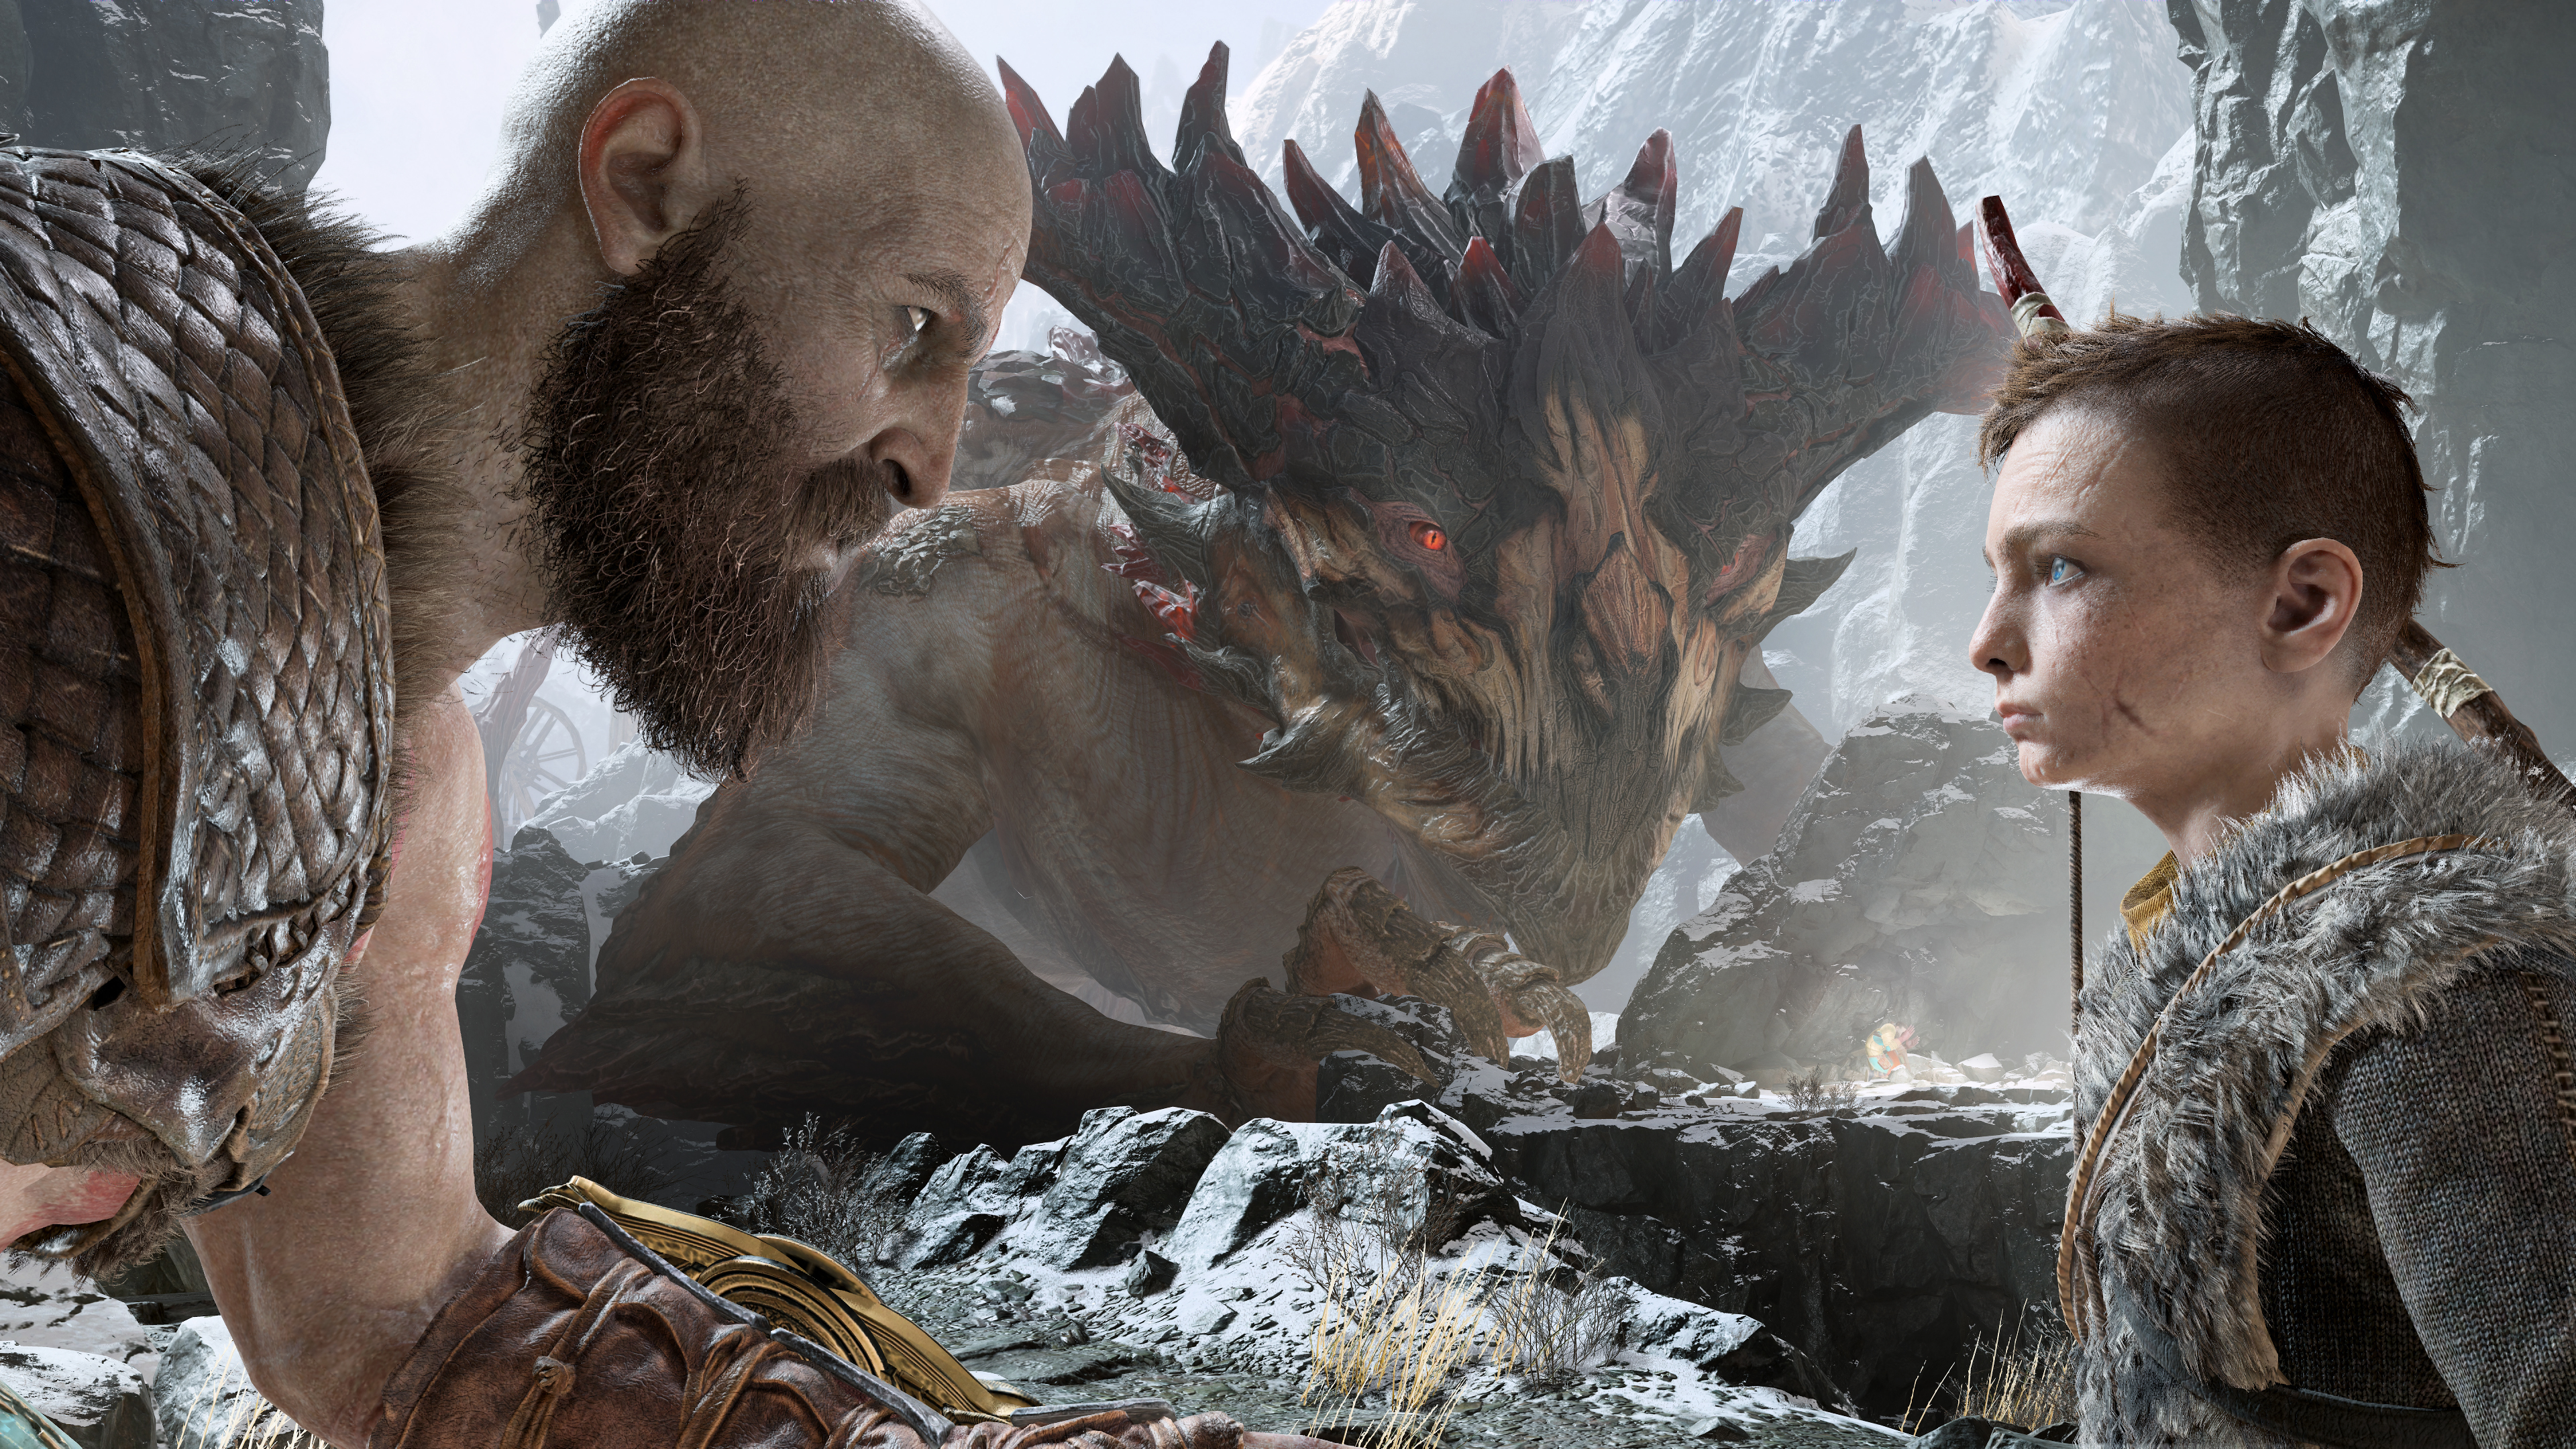 Kratos and atreus god of war 4 4k hd games 4k wallpapers - 4k wallpaper of god ...